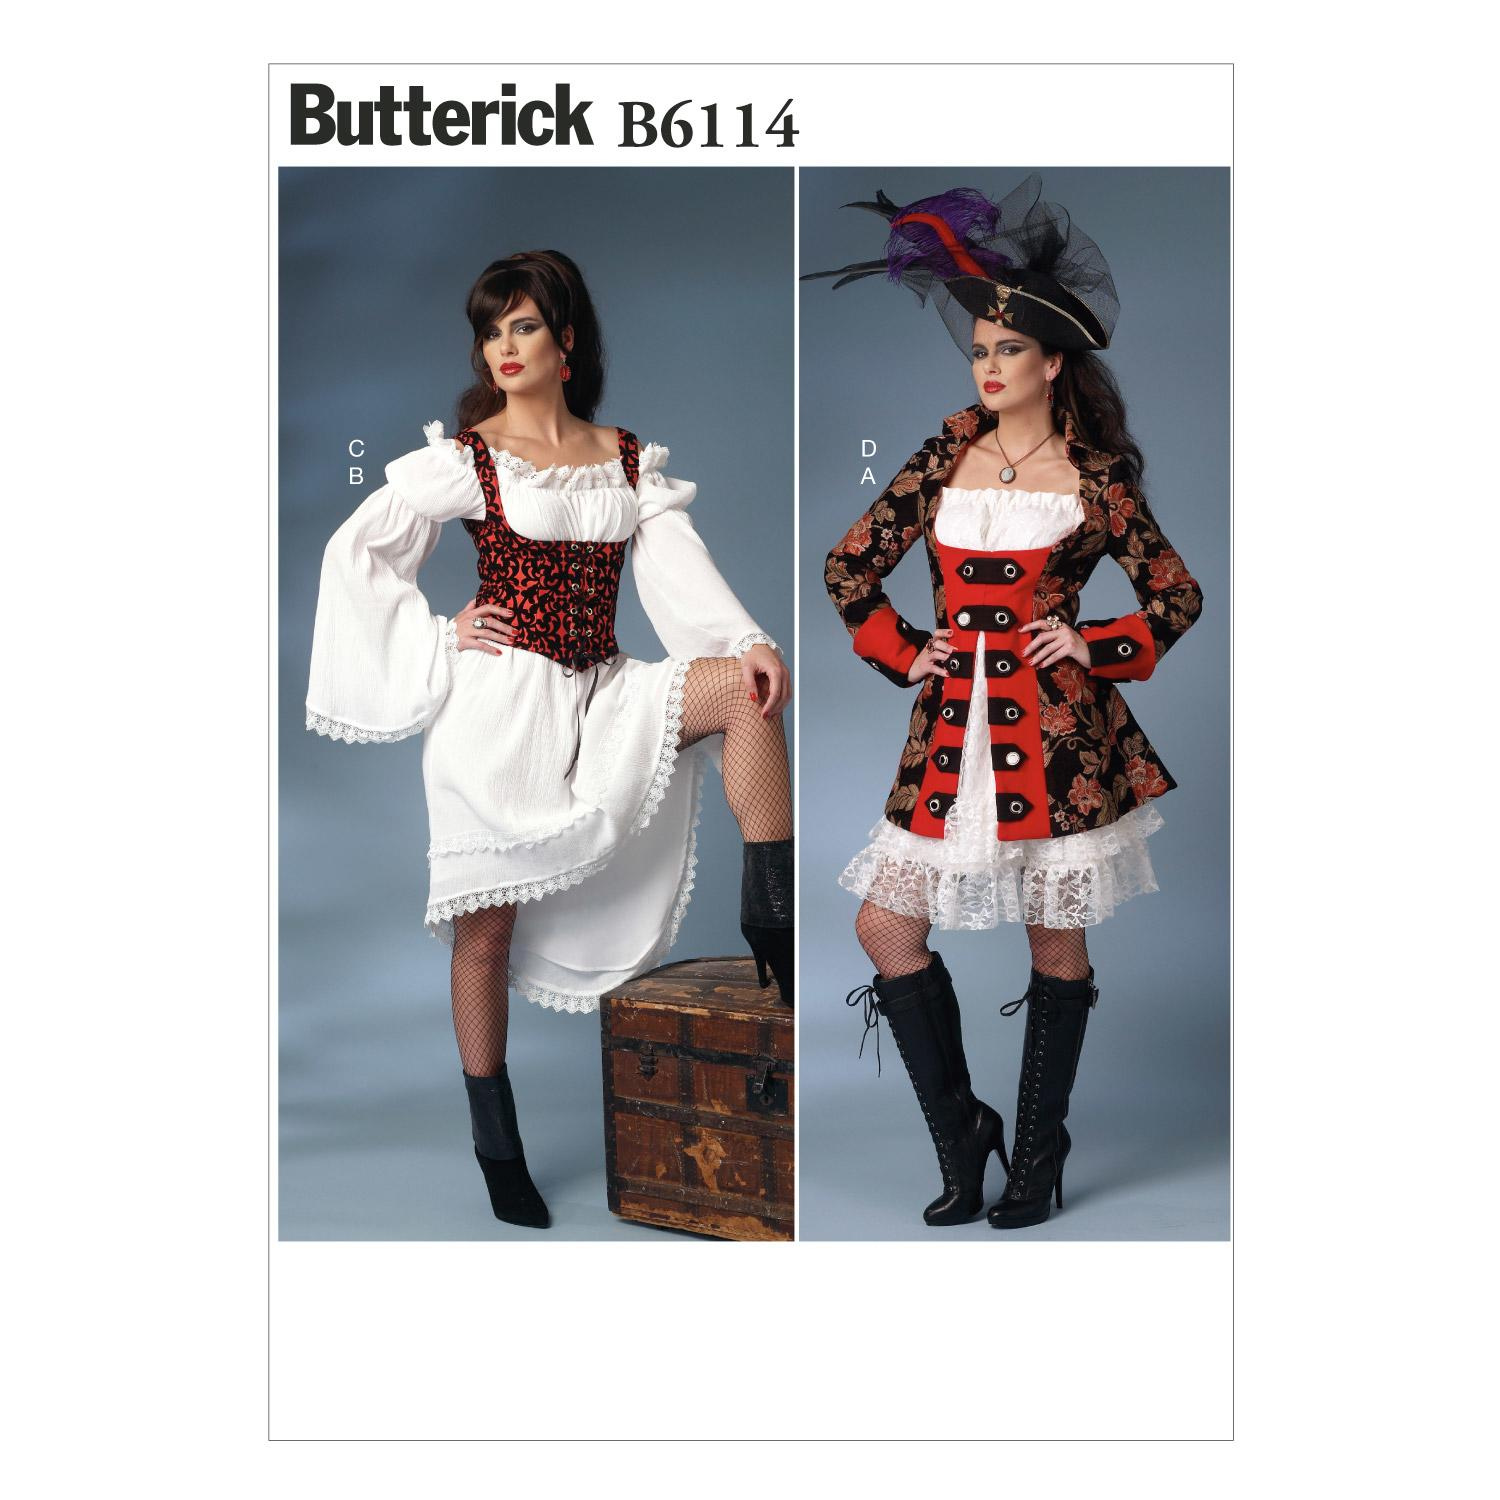 Butterick B6114 Misses' Costume